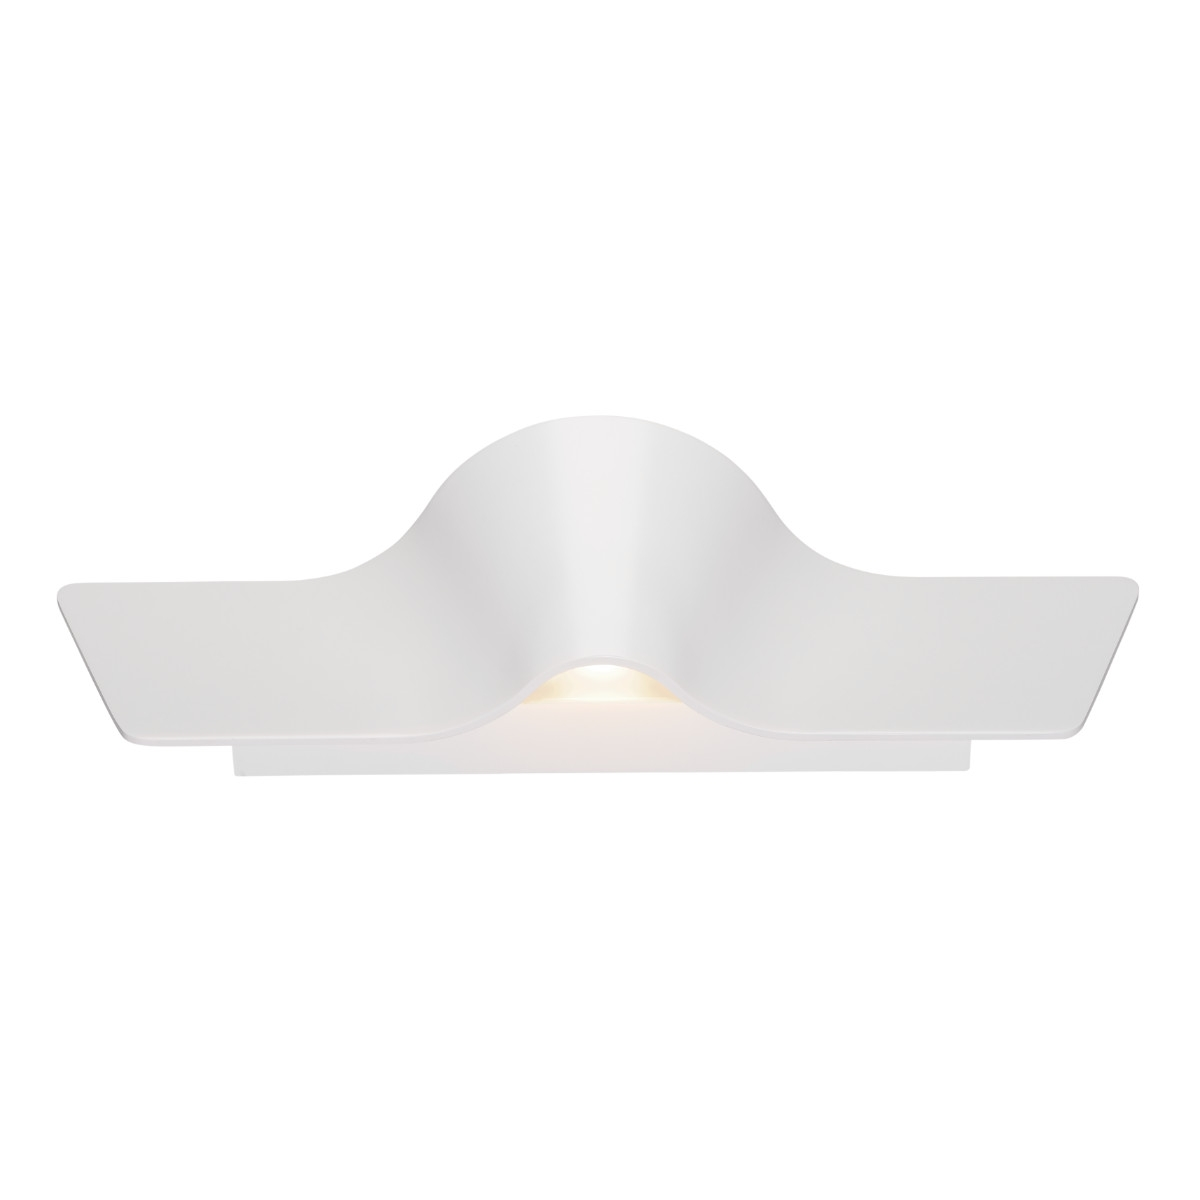 SLV Wave Wall 45 Up/down LED Vägglampa Dim to Warm